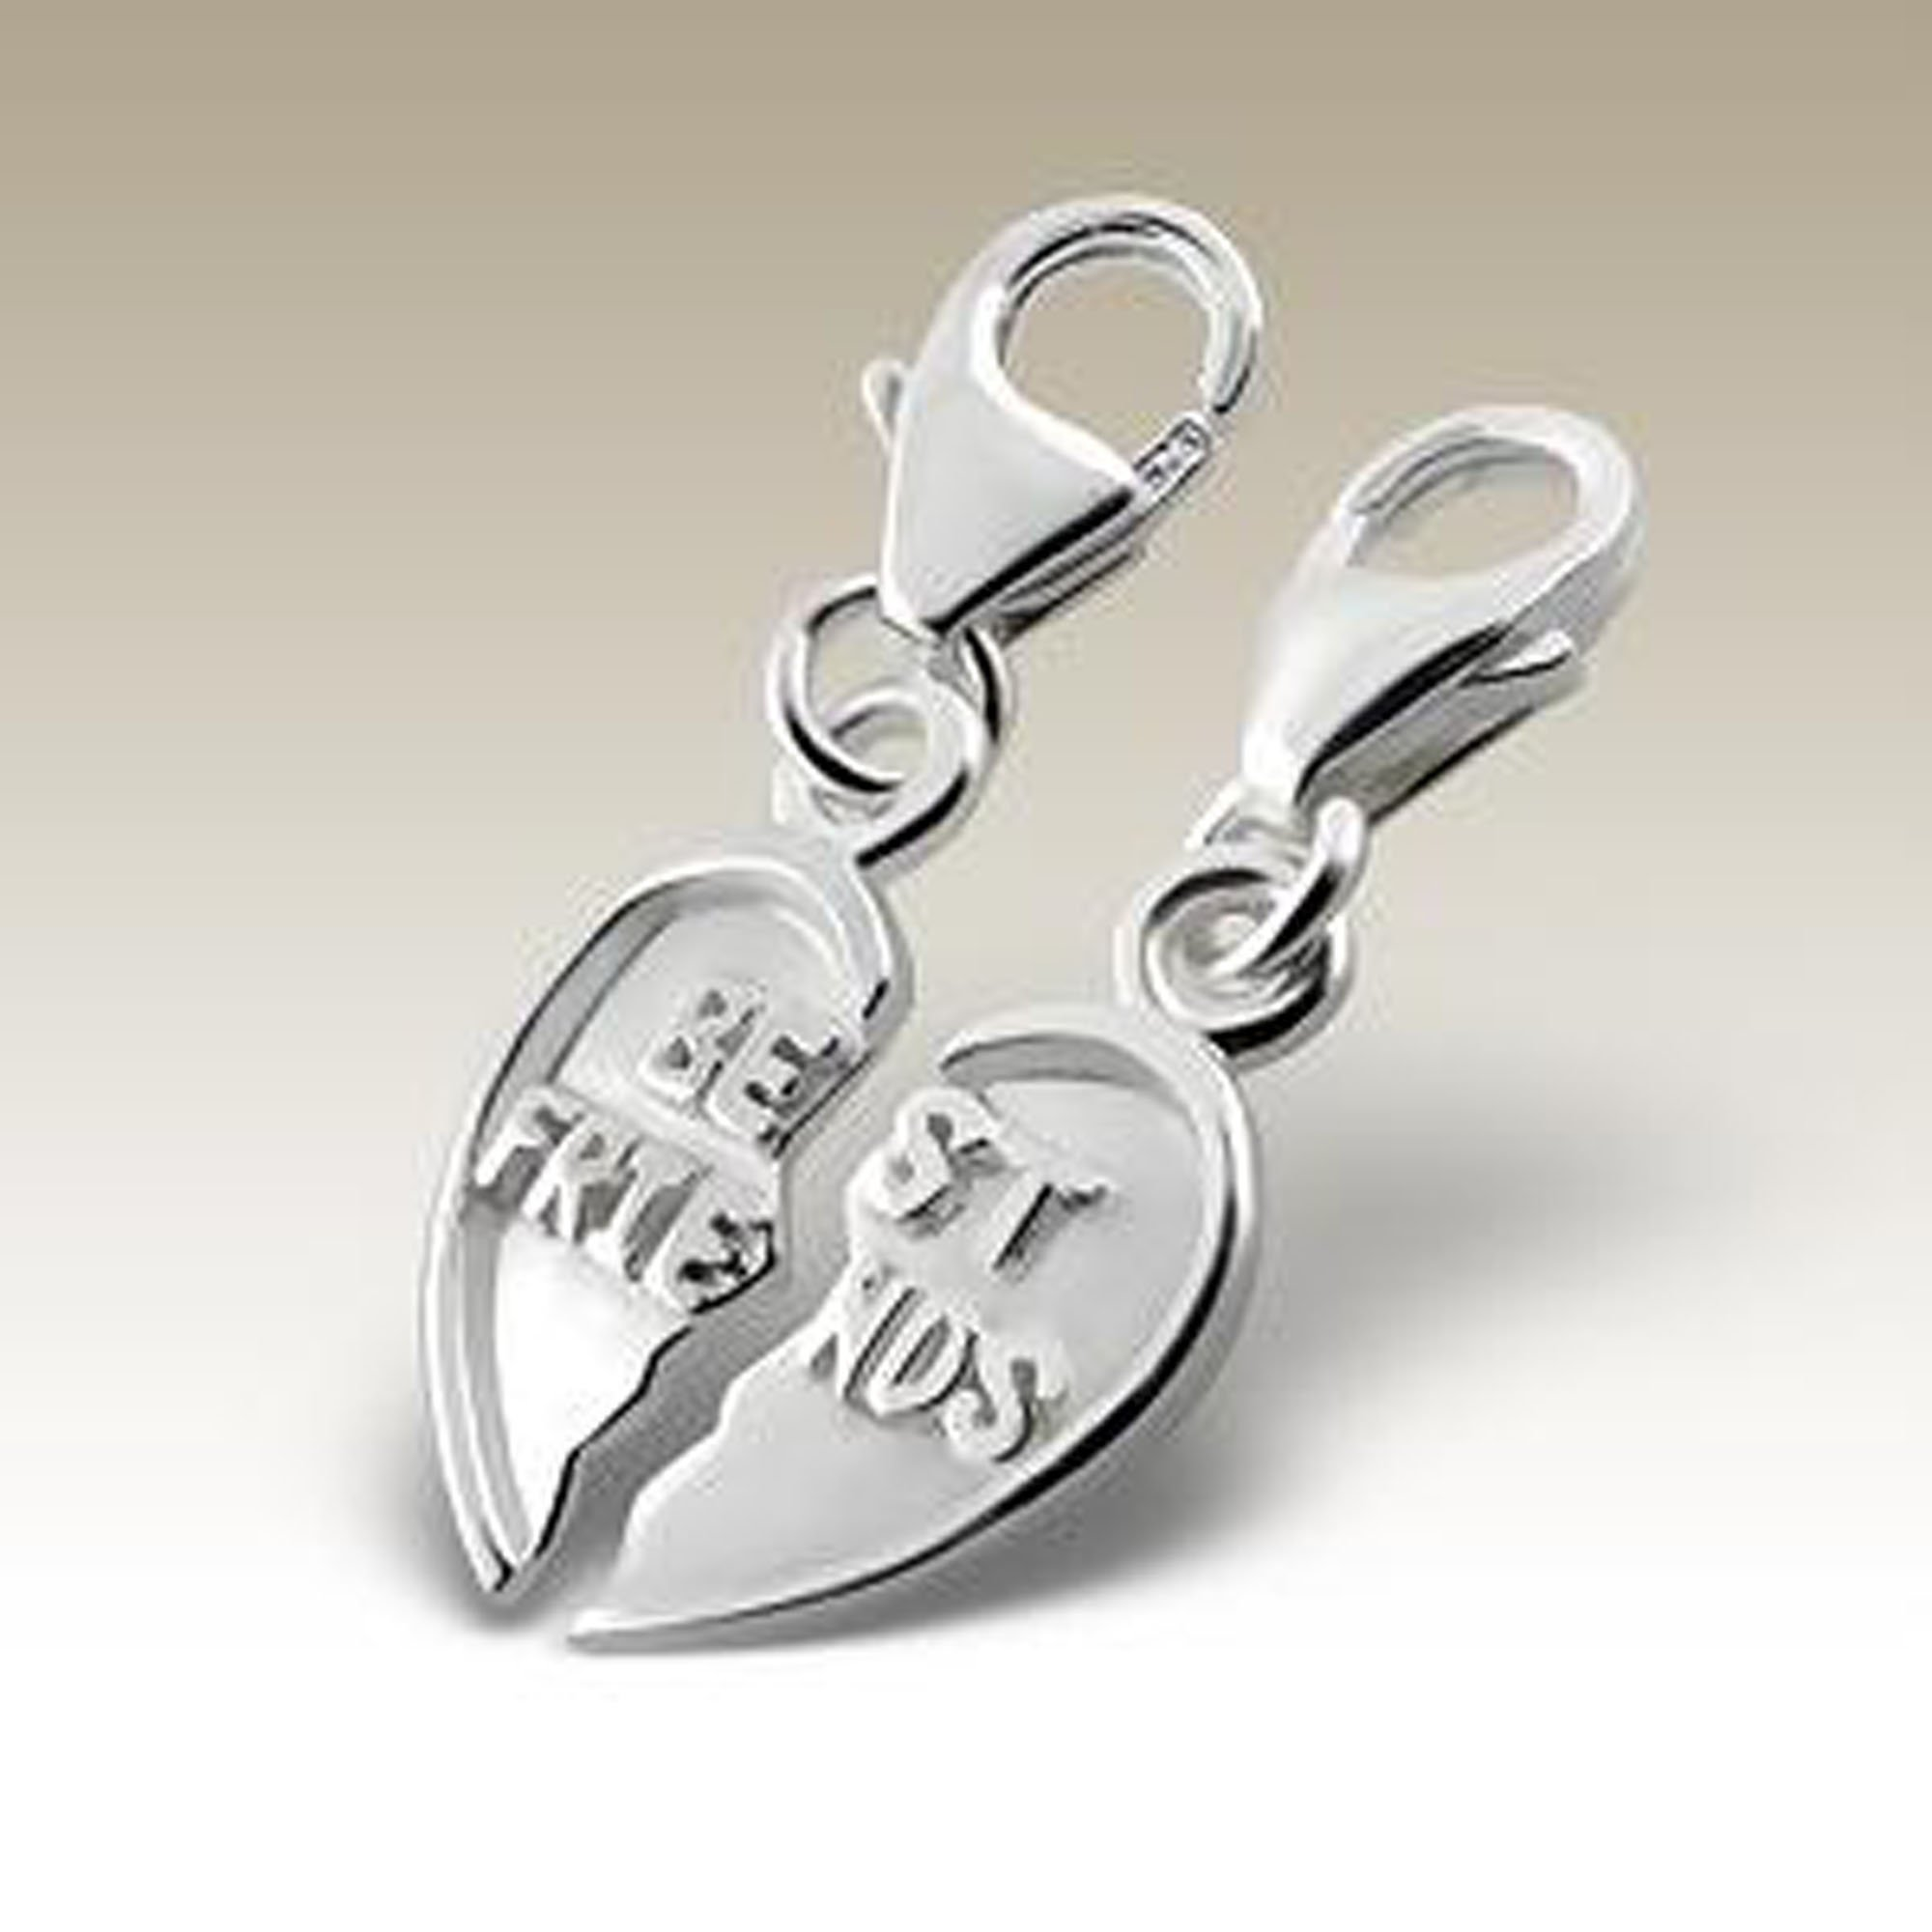 Best Friends Charms, Silver Charms with Lobster, Sterling Silver 925 (E12912)